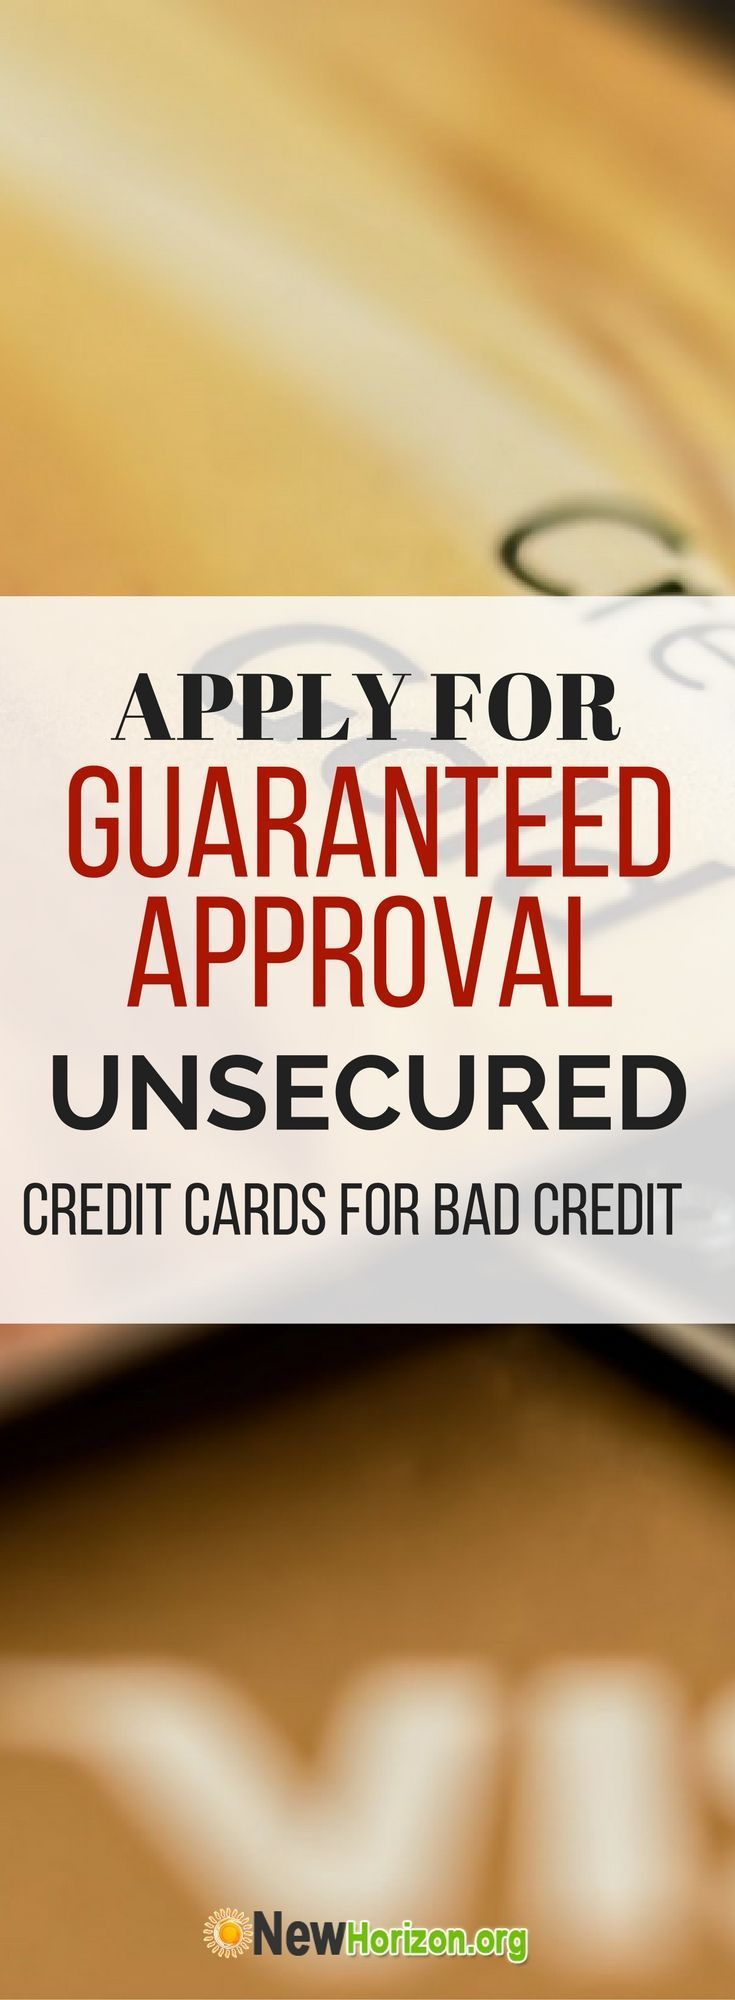 Guaranteed Approval Unsecured Credit Cards For Bad Credit Creditcards Guarante Mortgage Refinance Unsecured Credit Cards Bad Credit Credit Cards Bad Credit